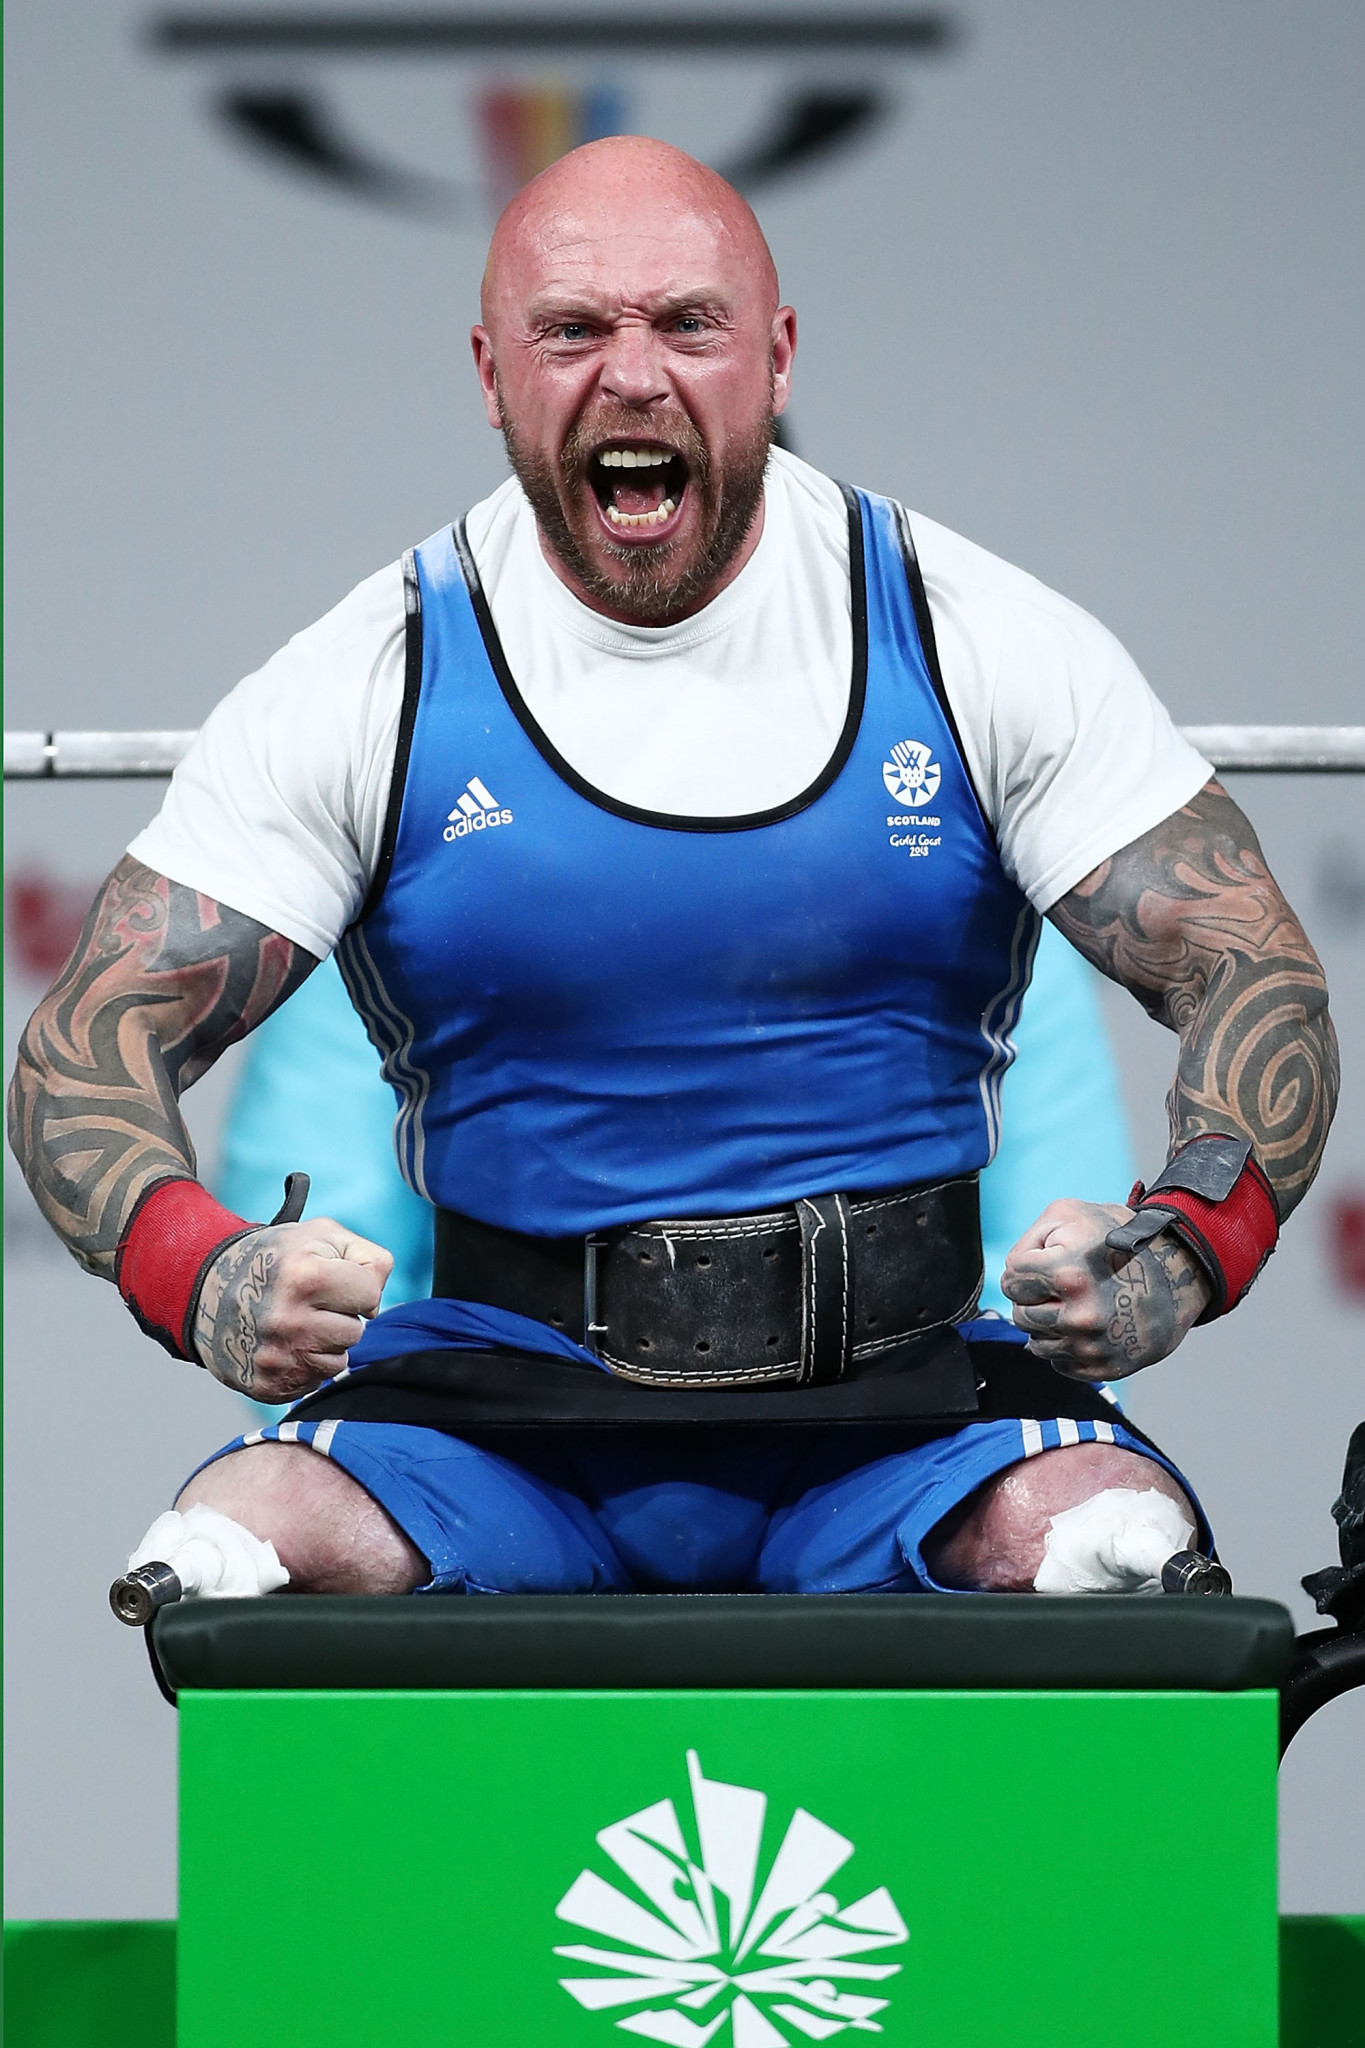 Great Britain's Michael Yule will now receive Issa's silver medal from the 2017 World Para Powerlifting World Cup ©Getty Images